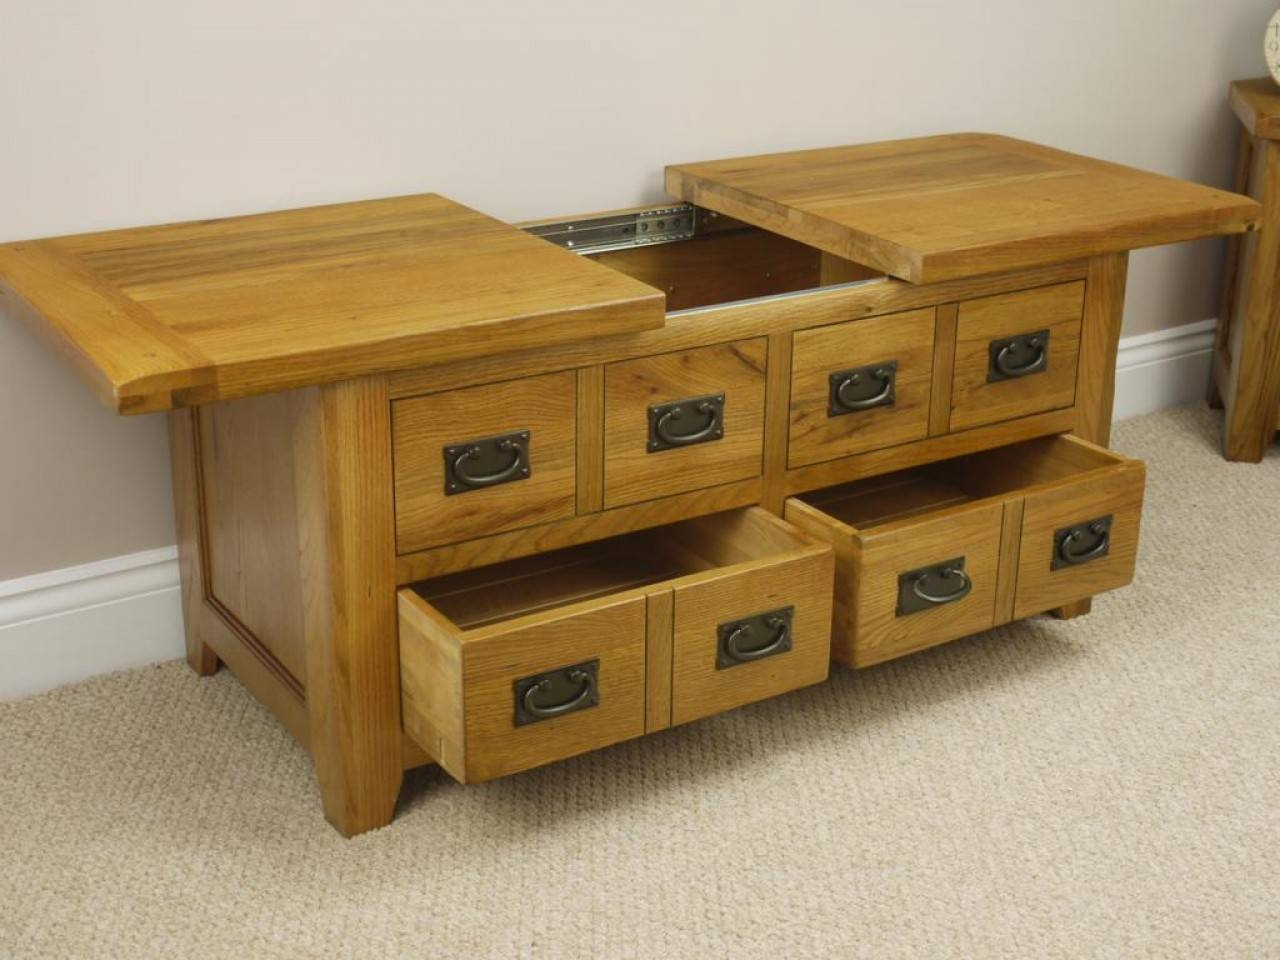 Large Square Oak Coffee Table With Storage | Coffee Tables Decoration inside Oak Square Coffee Tables (Image 13 of 30)